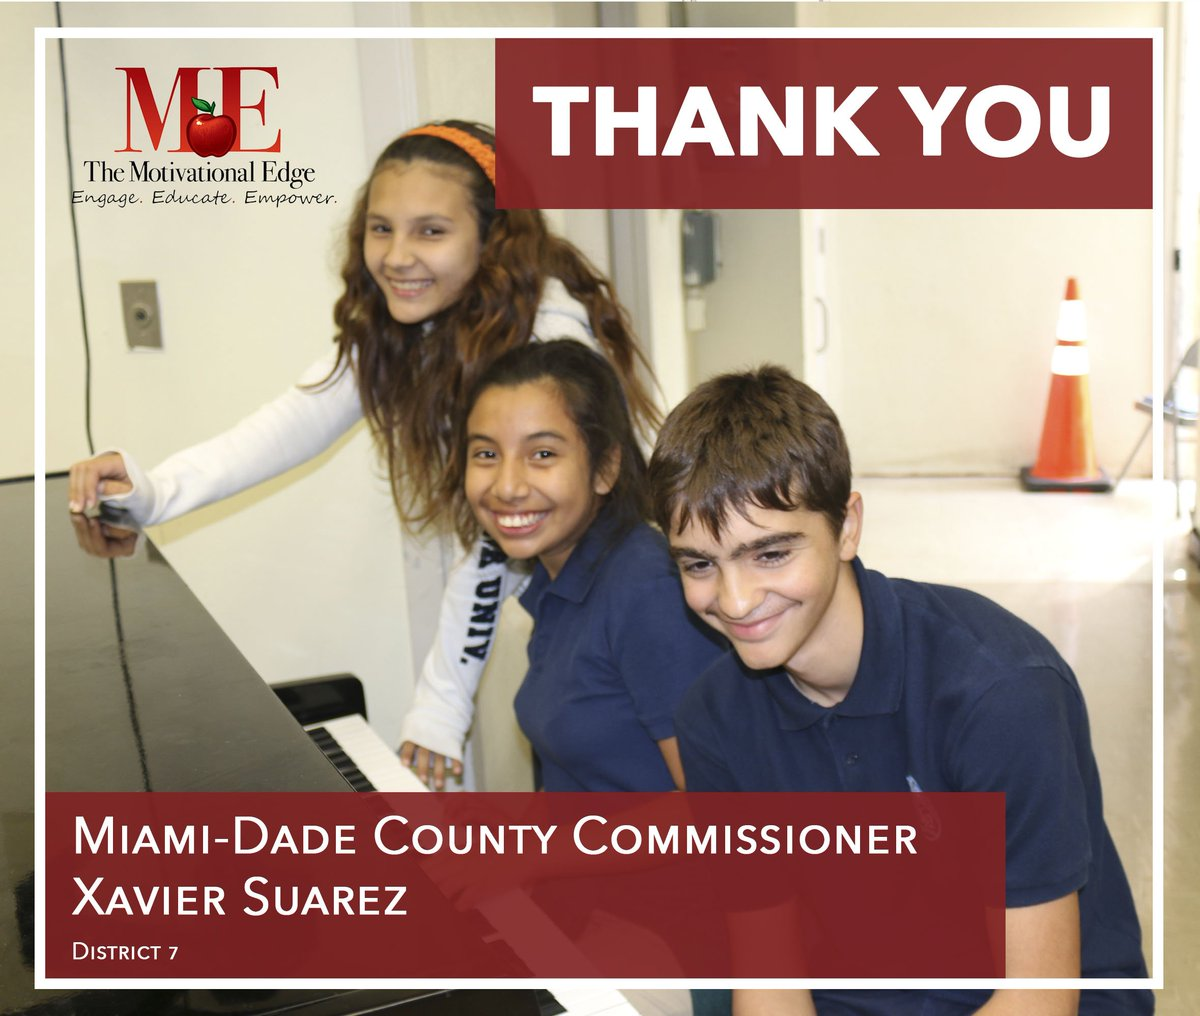 Thanks to @XavierLSuarez1, @PonceExplorers #middleschool #students #benefit from #lyricalexpression programs #afterschool. #musiced #Miami<br>http://pic.twitter.com/0HW5GirH7N